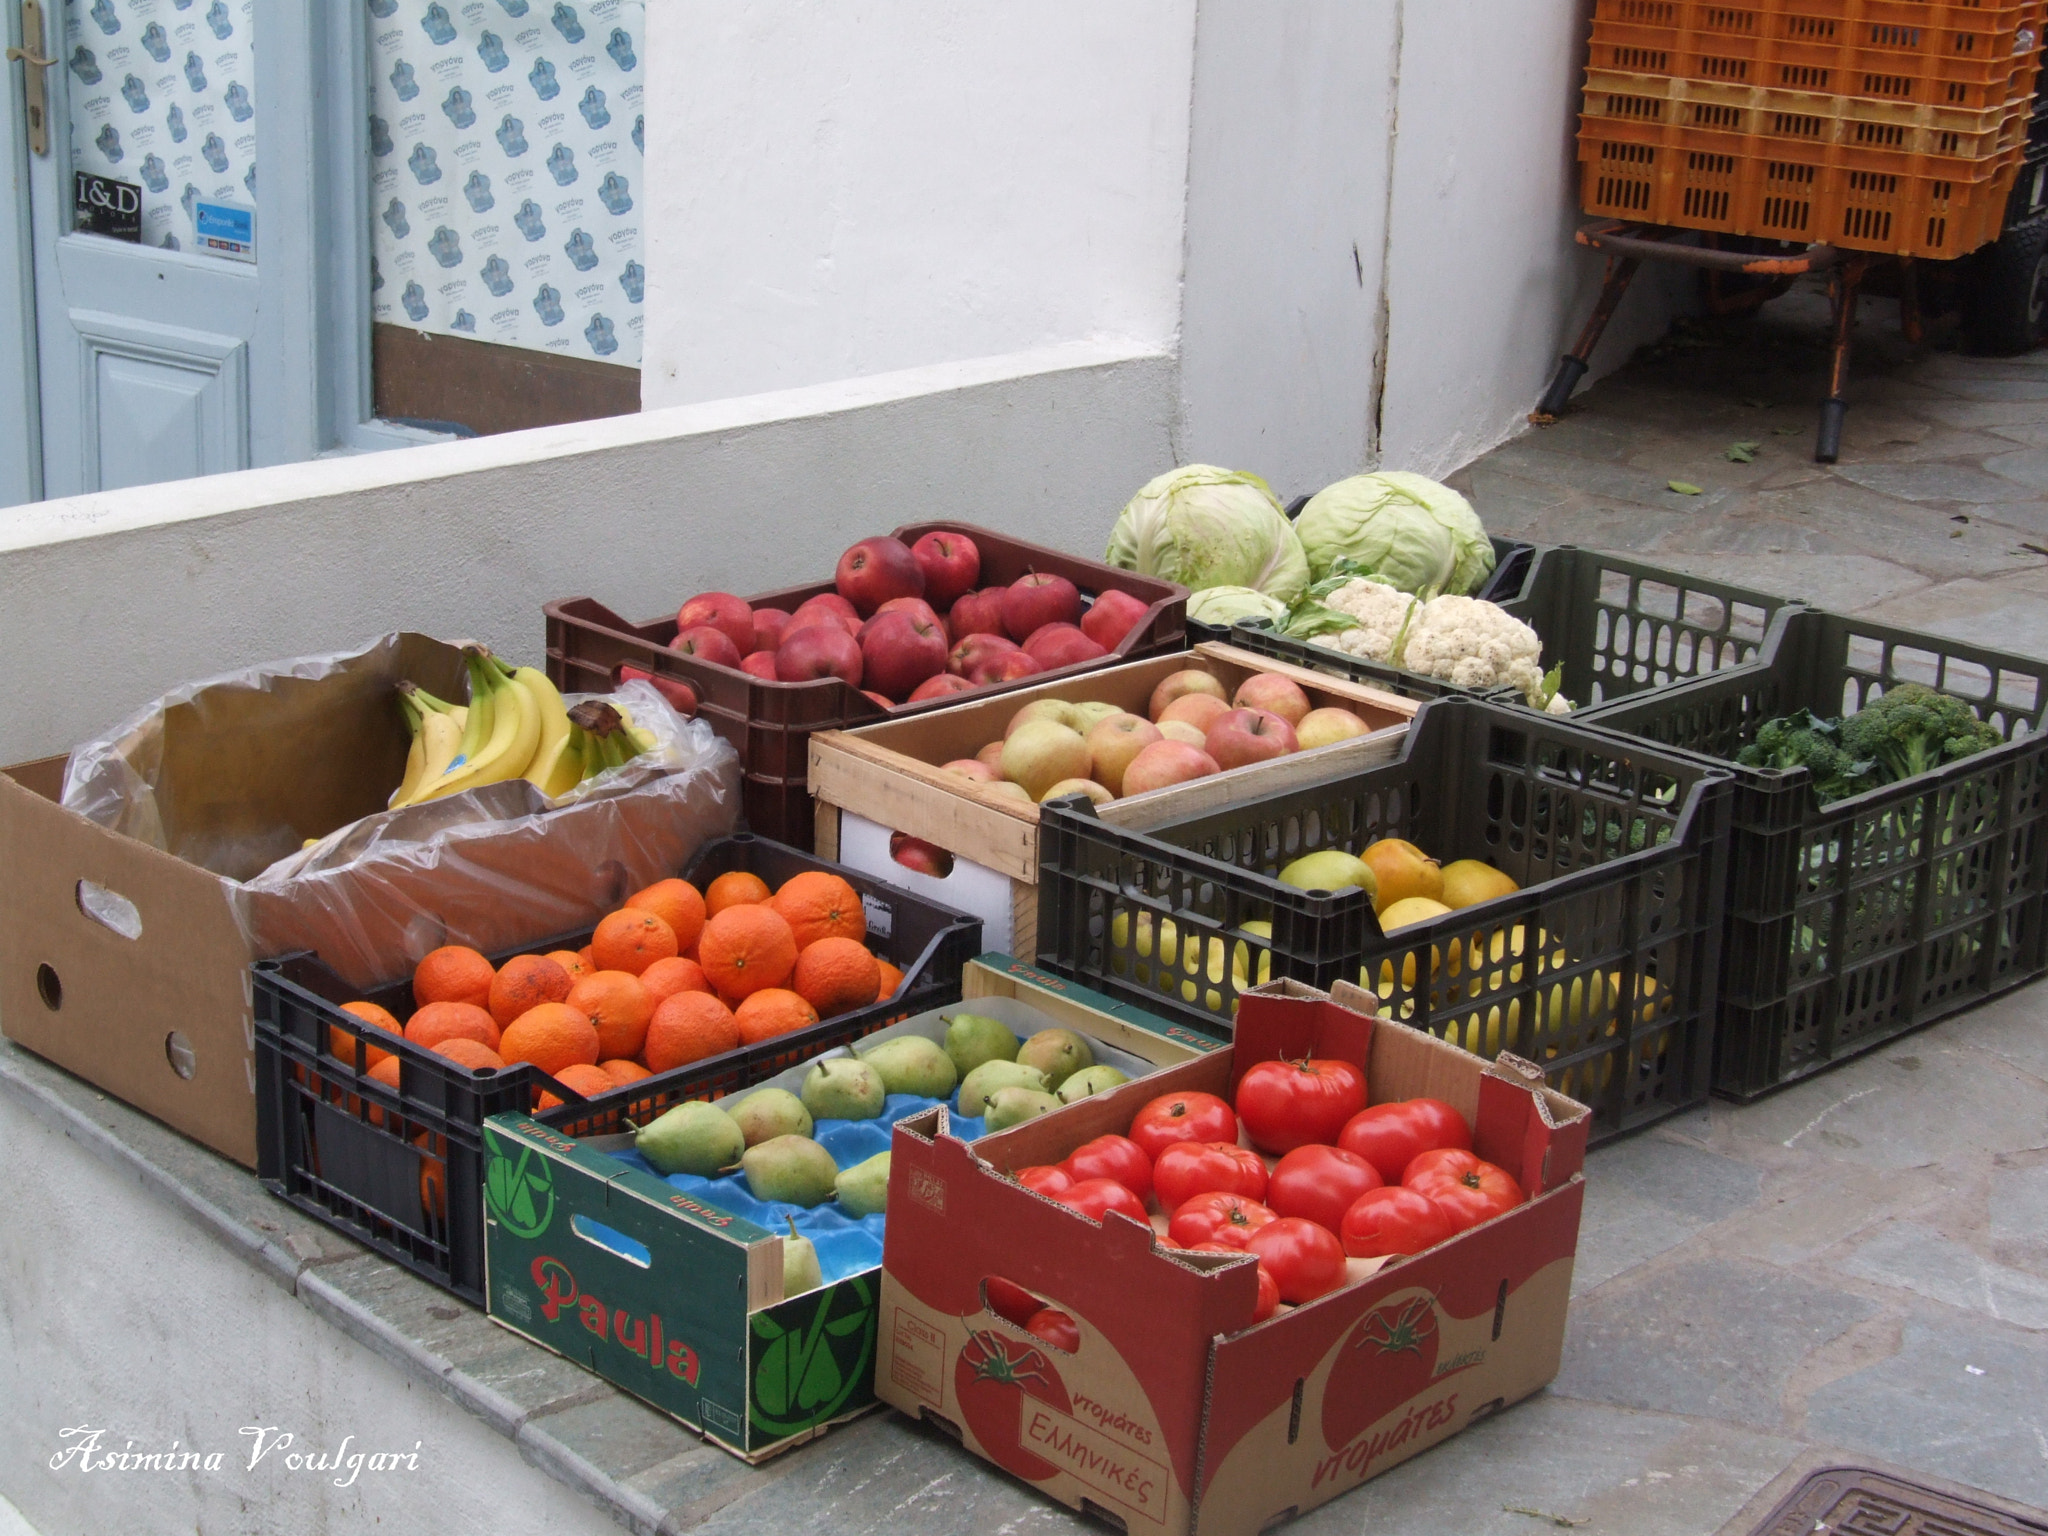 Photograph Grocery store by Asimina   Voulgari  on 500px